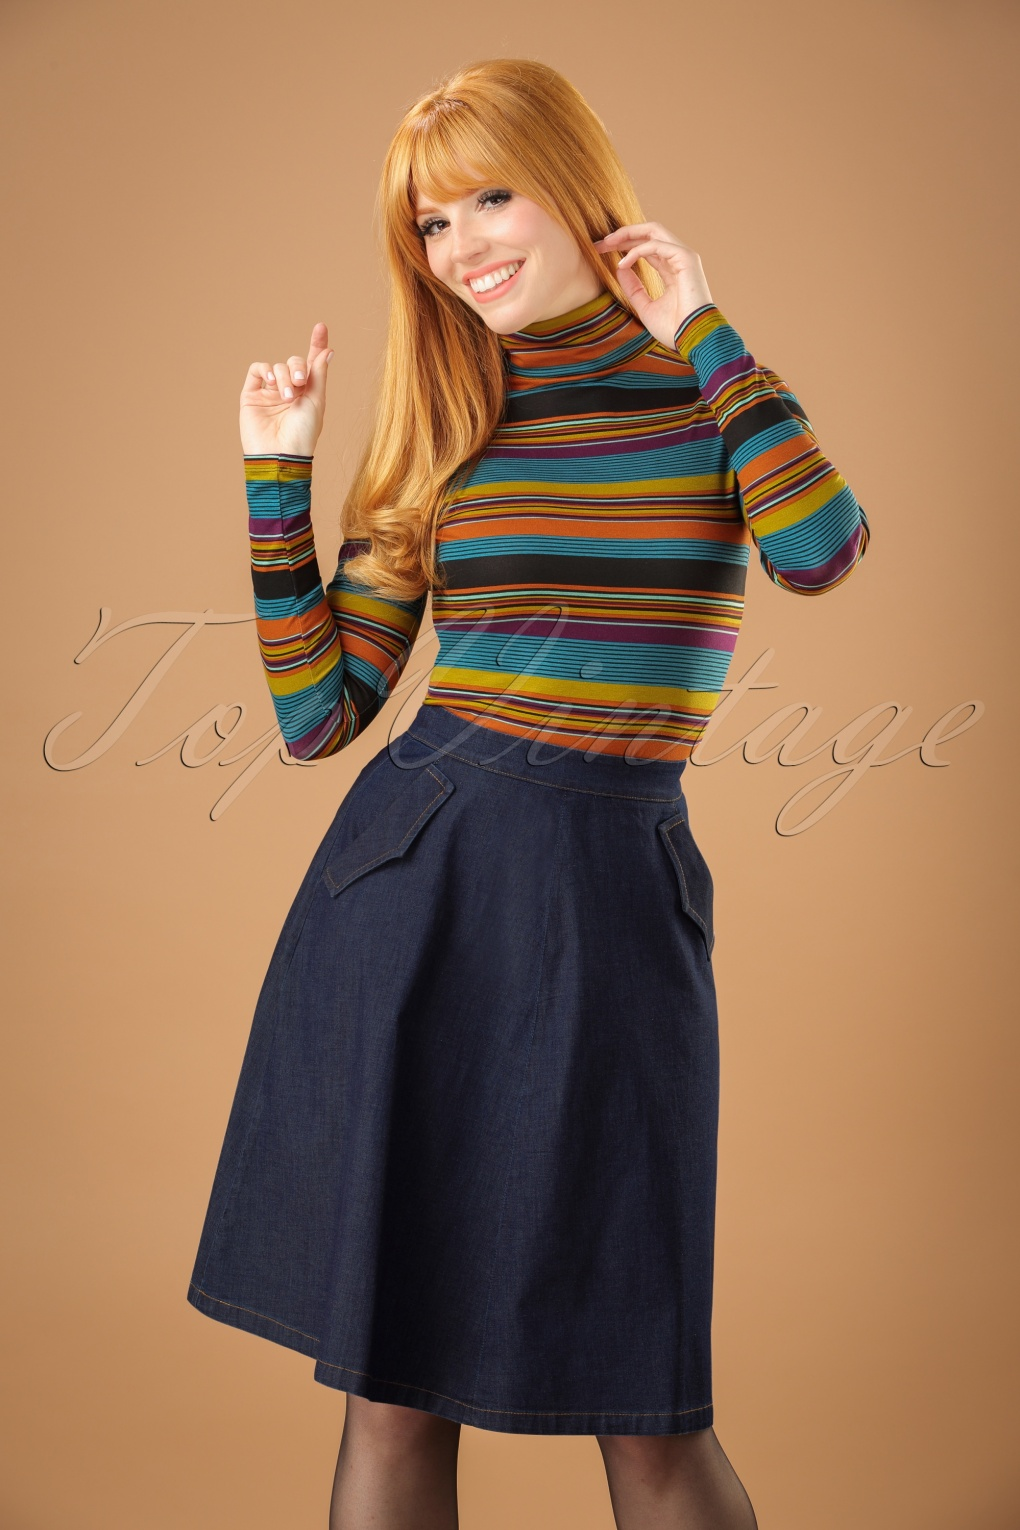 1960s Fashion: What Did Women Wear? 70s Delphi Chambray Skirt in Dutch Blue £63.65 AT vintagedancer.com